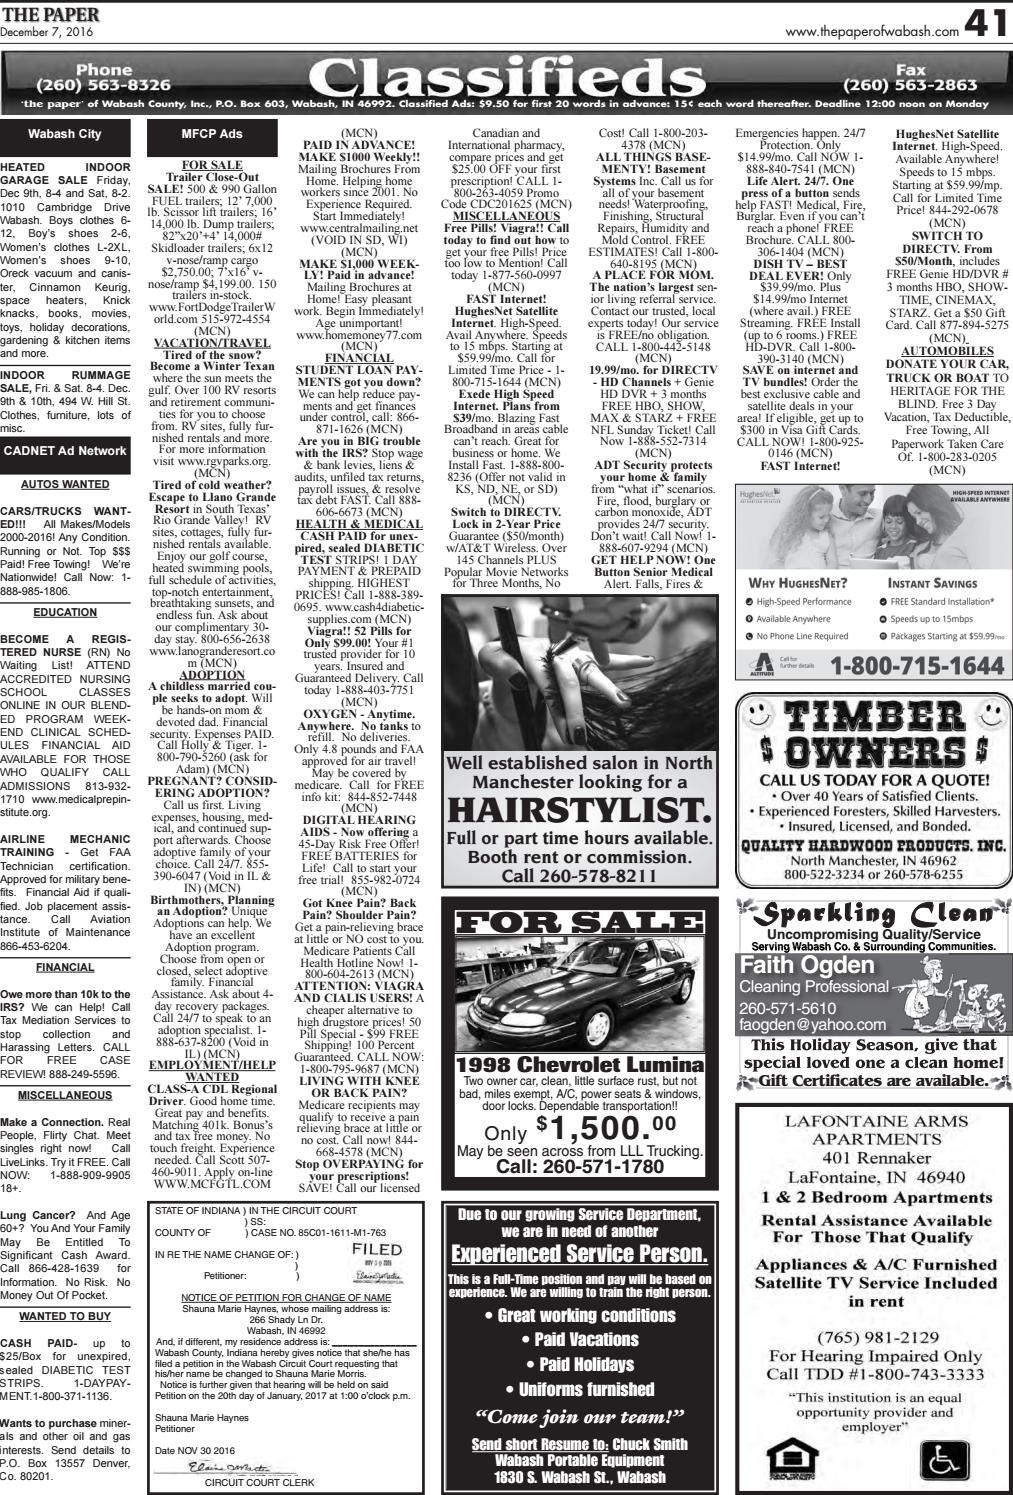 The Paper of Wabash County - Dec  7, 2016, issue by The